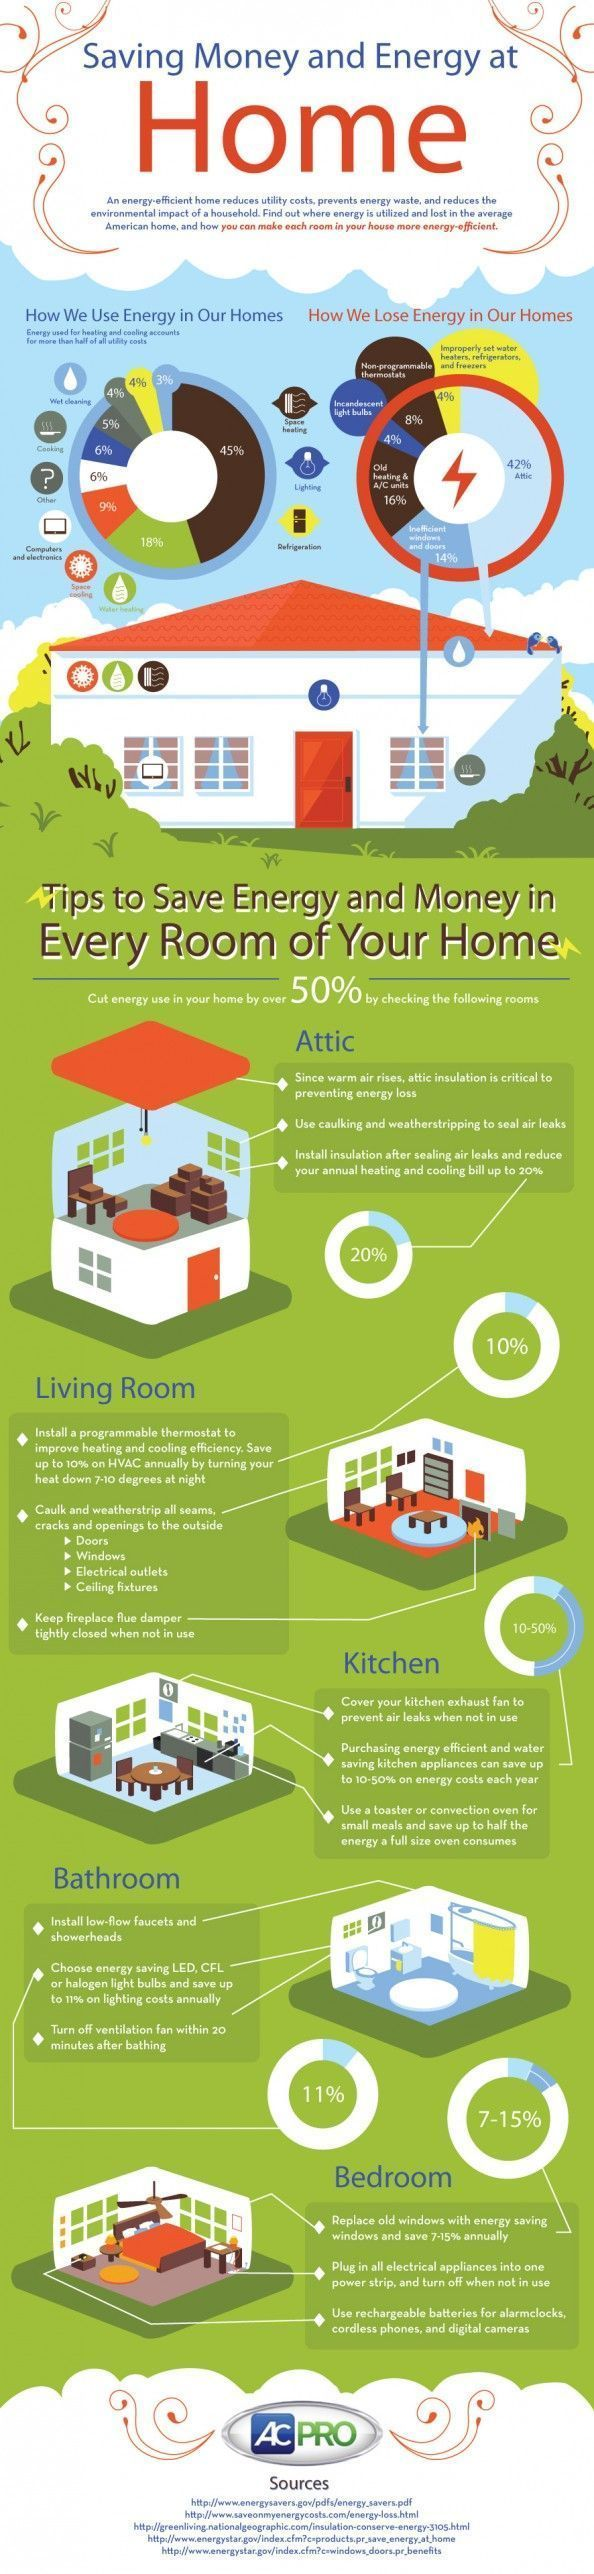 Energy Efficient Home Upgrades in Los Angeles For $0 Down -- Home Improvement Hub -- Via - [Energy Saving in the Home]    http://visual.ly/energy-saving-home #SavingHomeEnergy